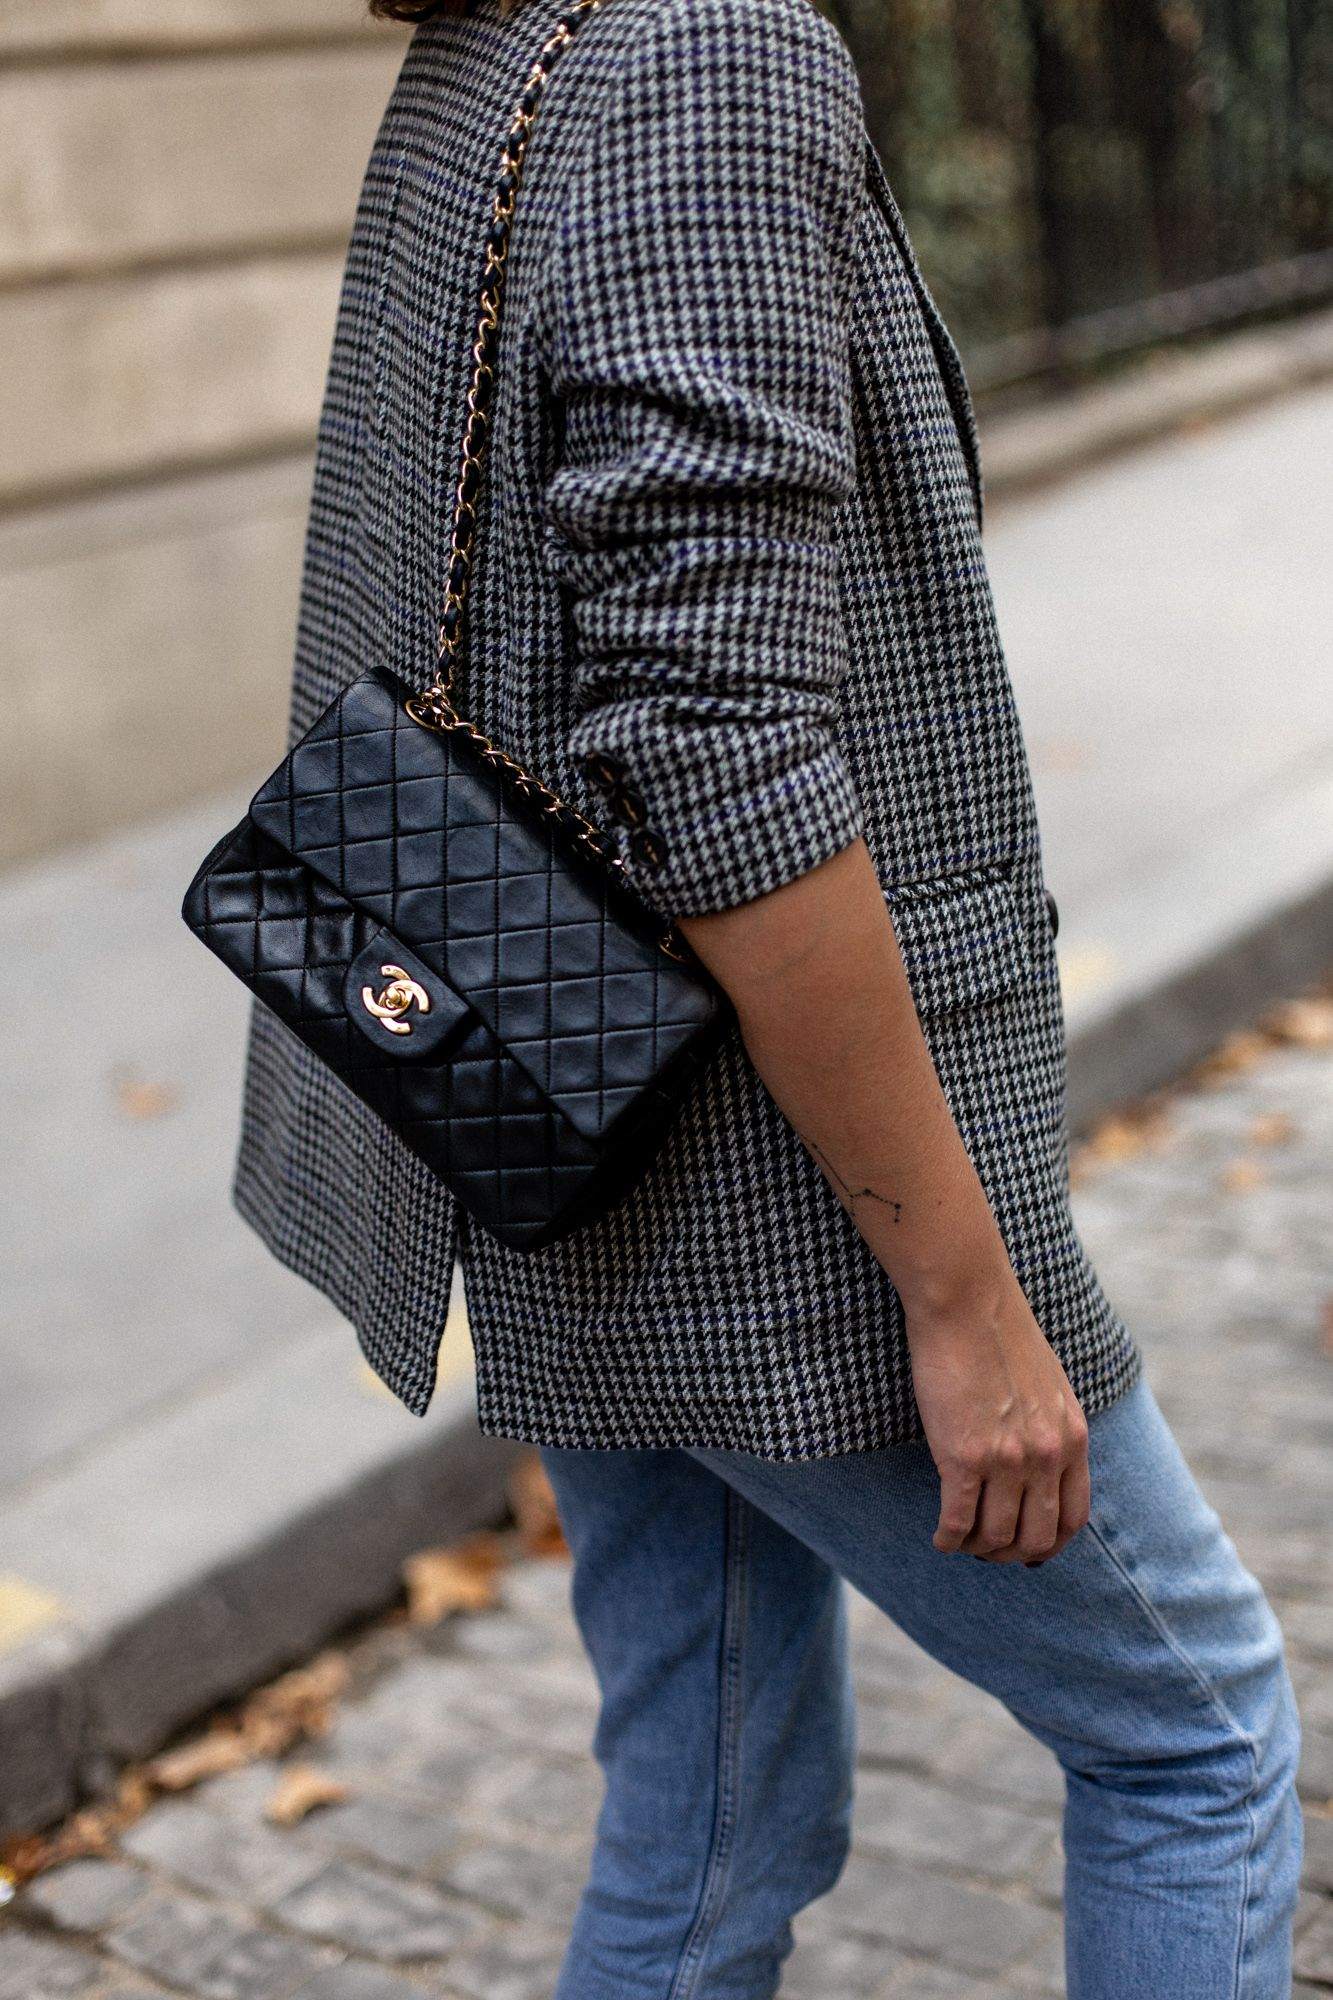 Emma Hill Style Grey Check Blazer Light Wash Boyfriend Jeans Vintage Chanel Classic Flap Bag S Chanel Bag Classic Vintage Chanel Bag Chanel Classic Flap Bag